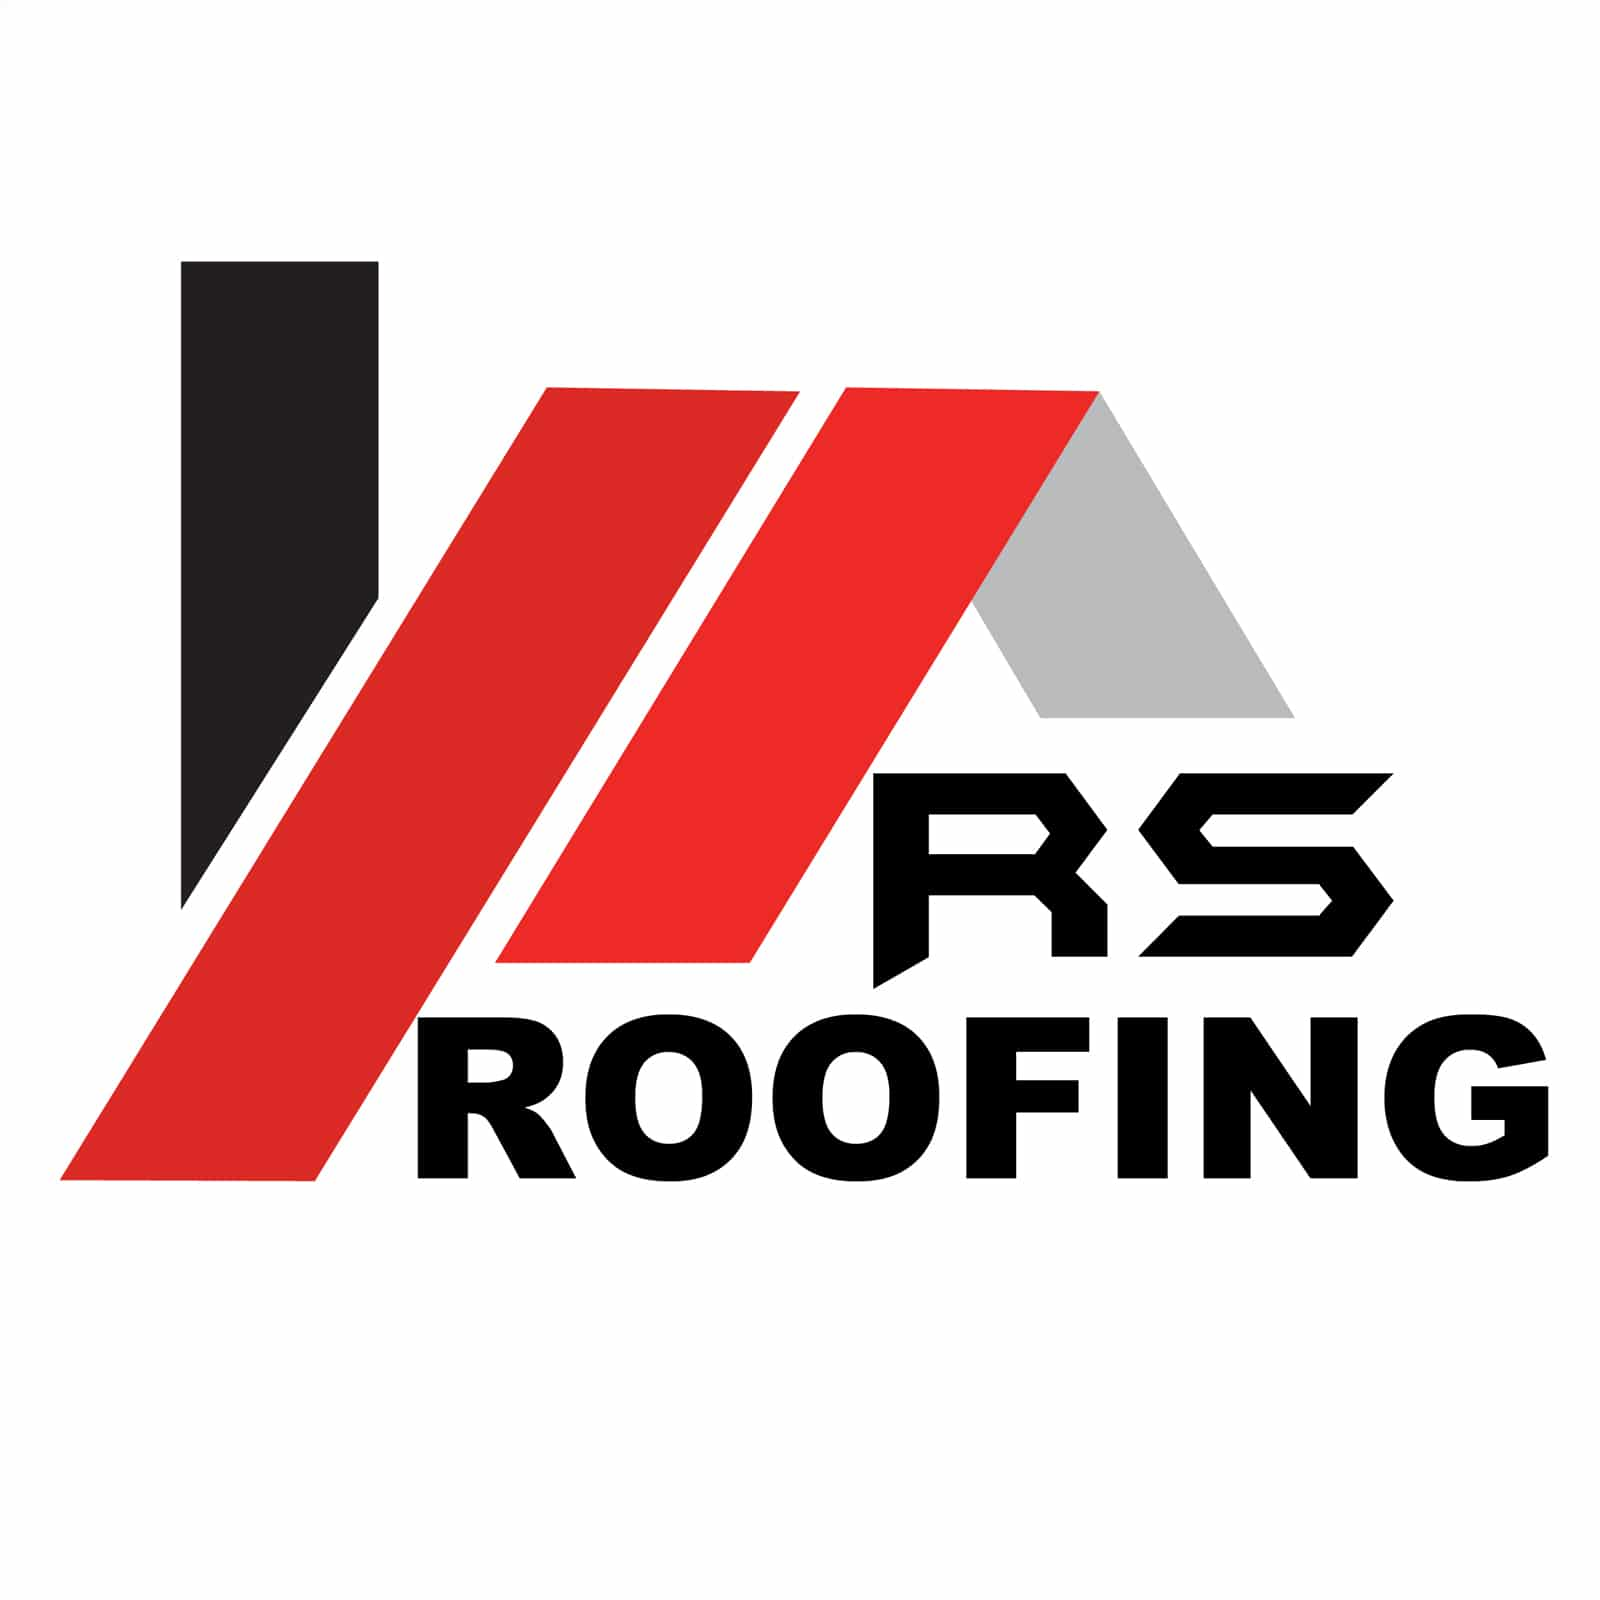 RS Roofing Uses Tilt Work Dallas Web Design & SEO